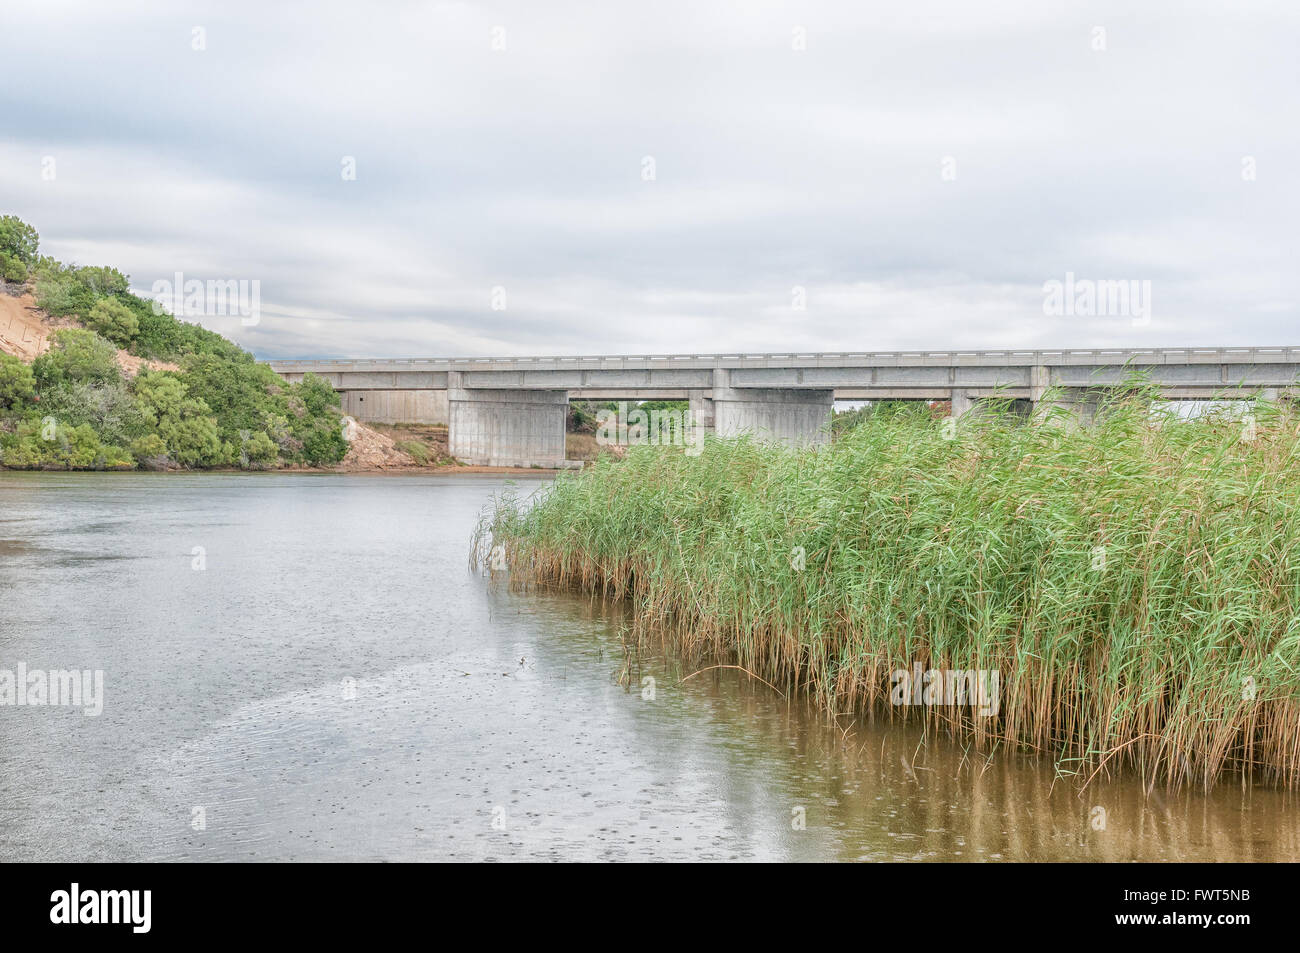 The N2 highway bridge over the Sundays River at Colchester in the Eastern Cape Province of South Africa - Stock Image